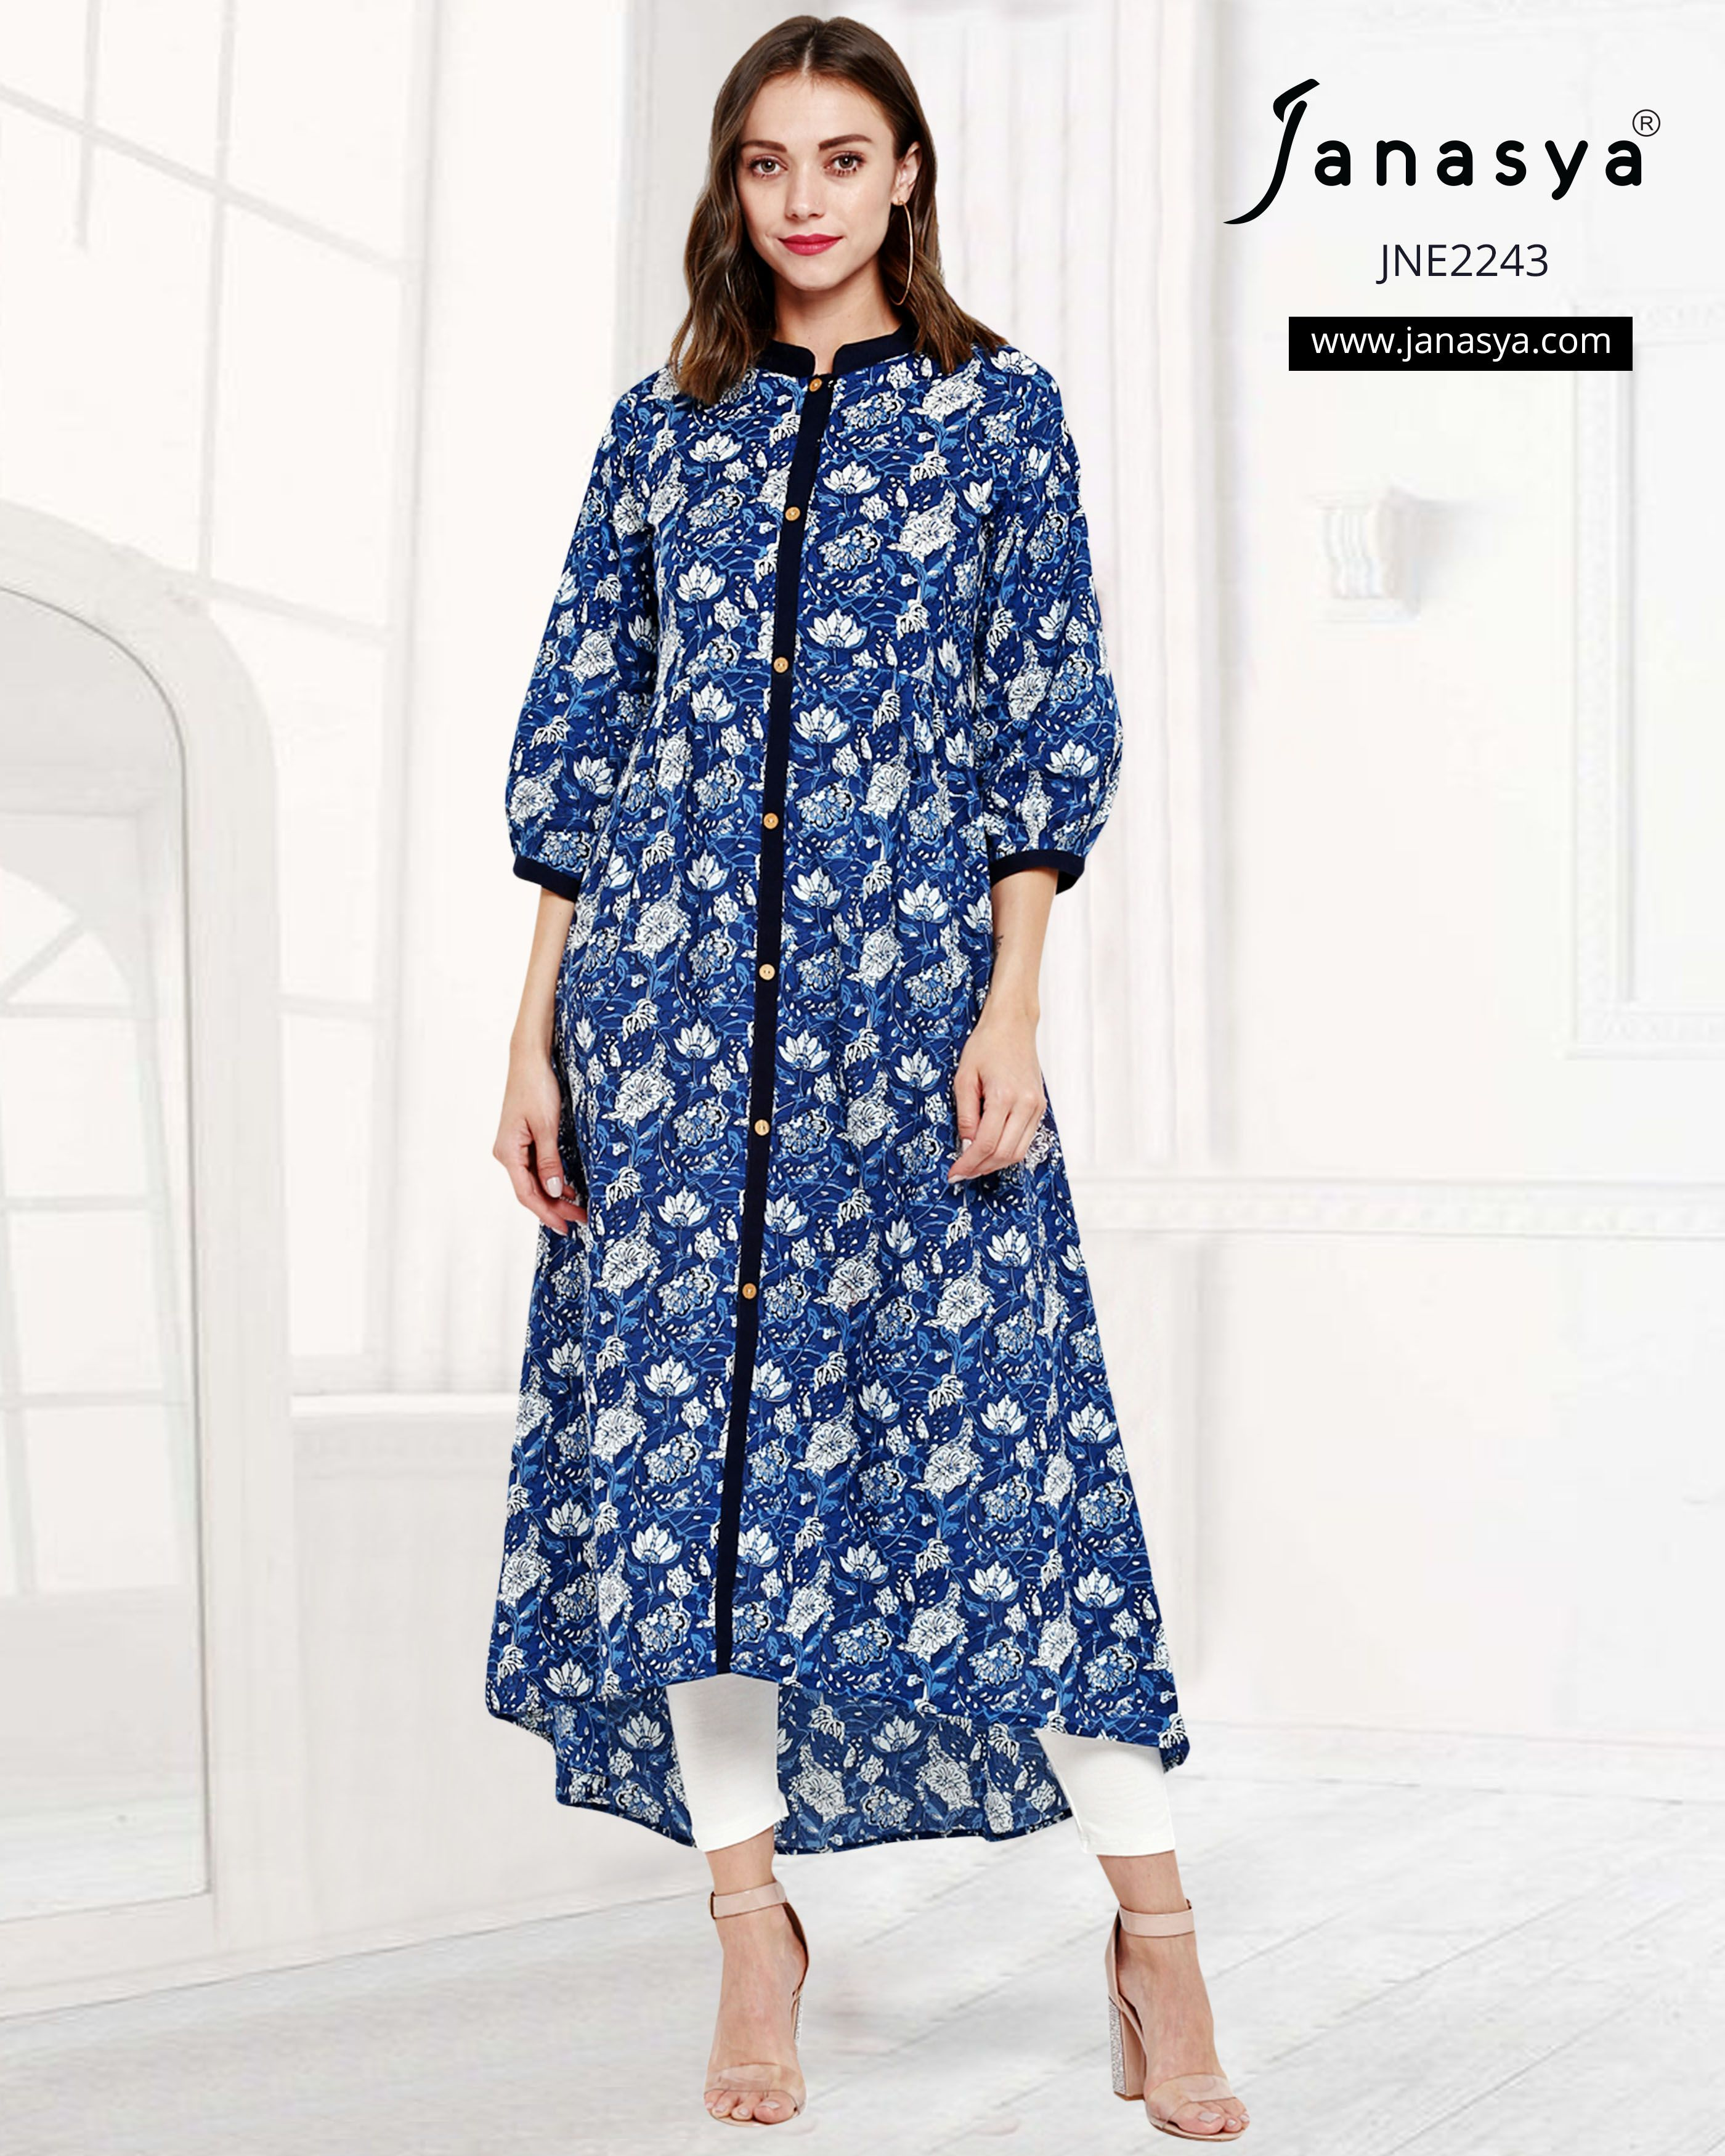 ca6821d5299 Blue Floral Print 3 4 Sleeves Flared   High Low Hemline Cotton Kurti ...